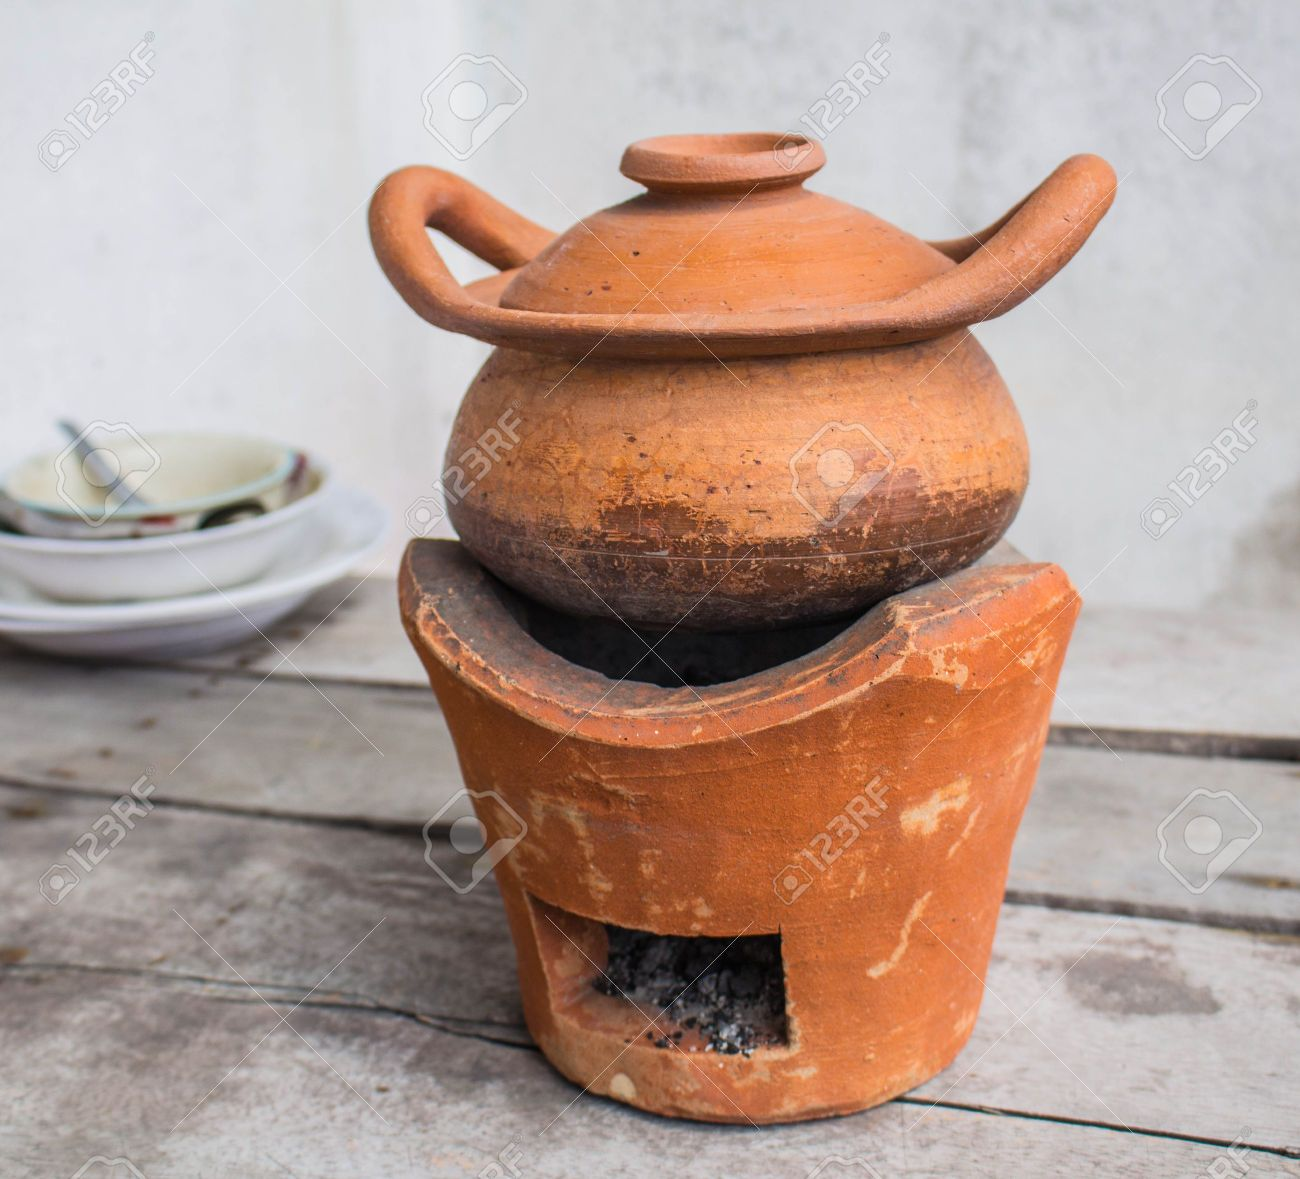 28++ Craft smart natural clay oven information